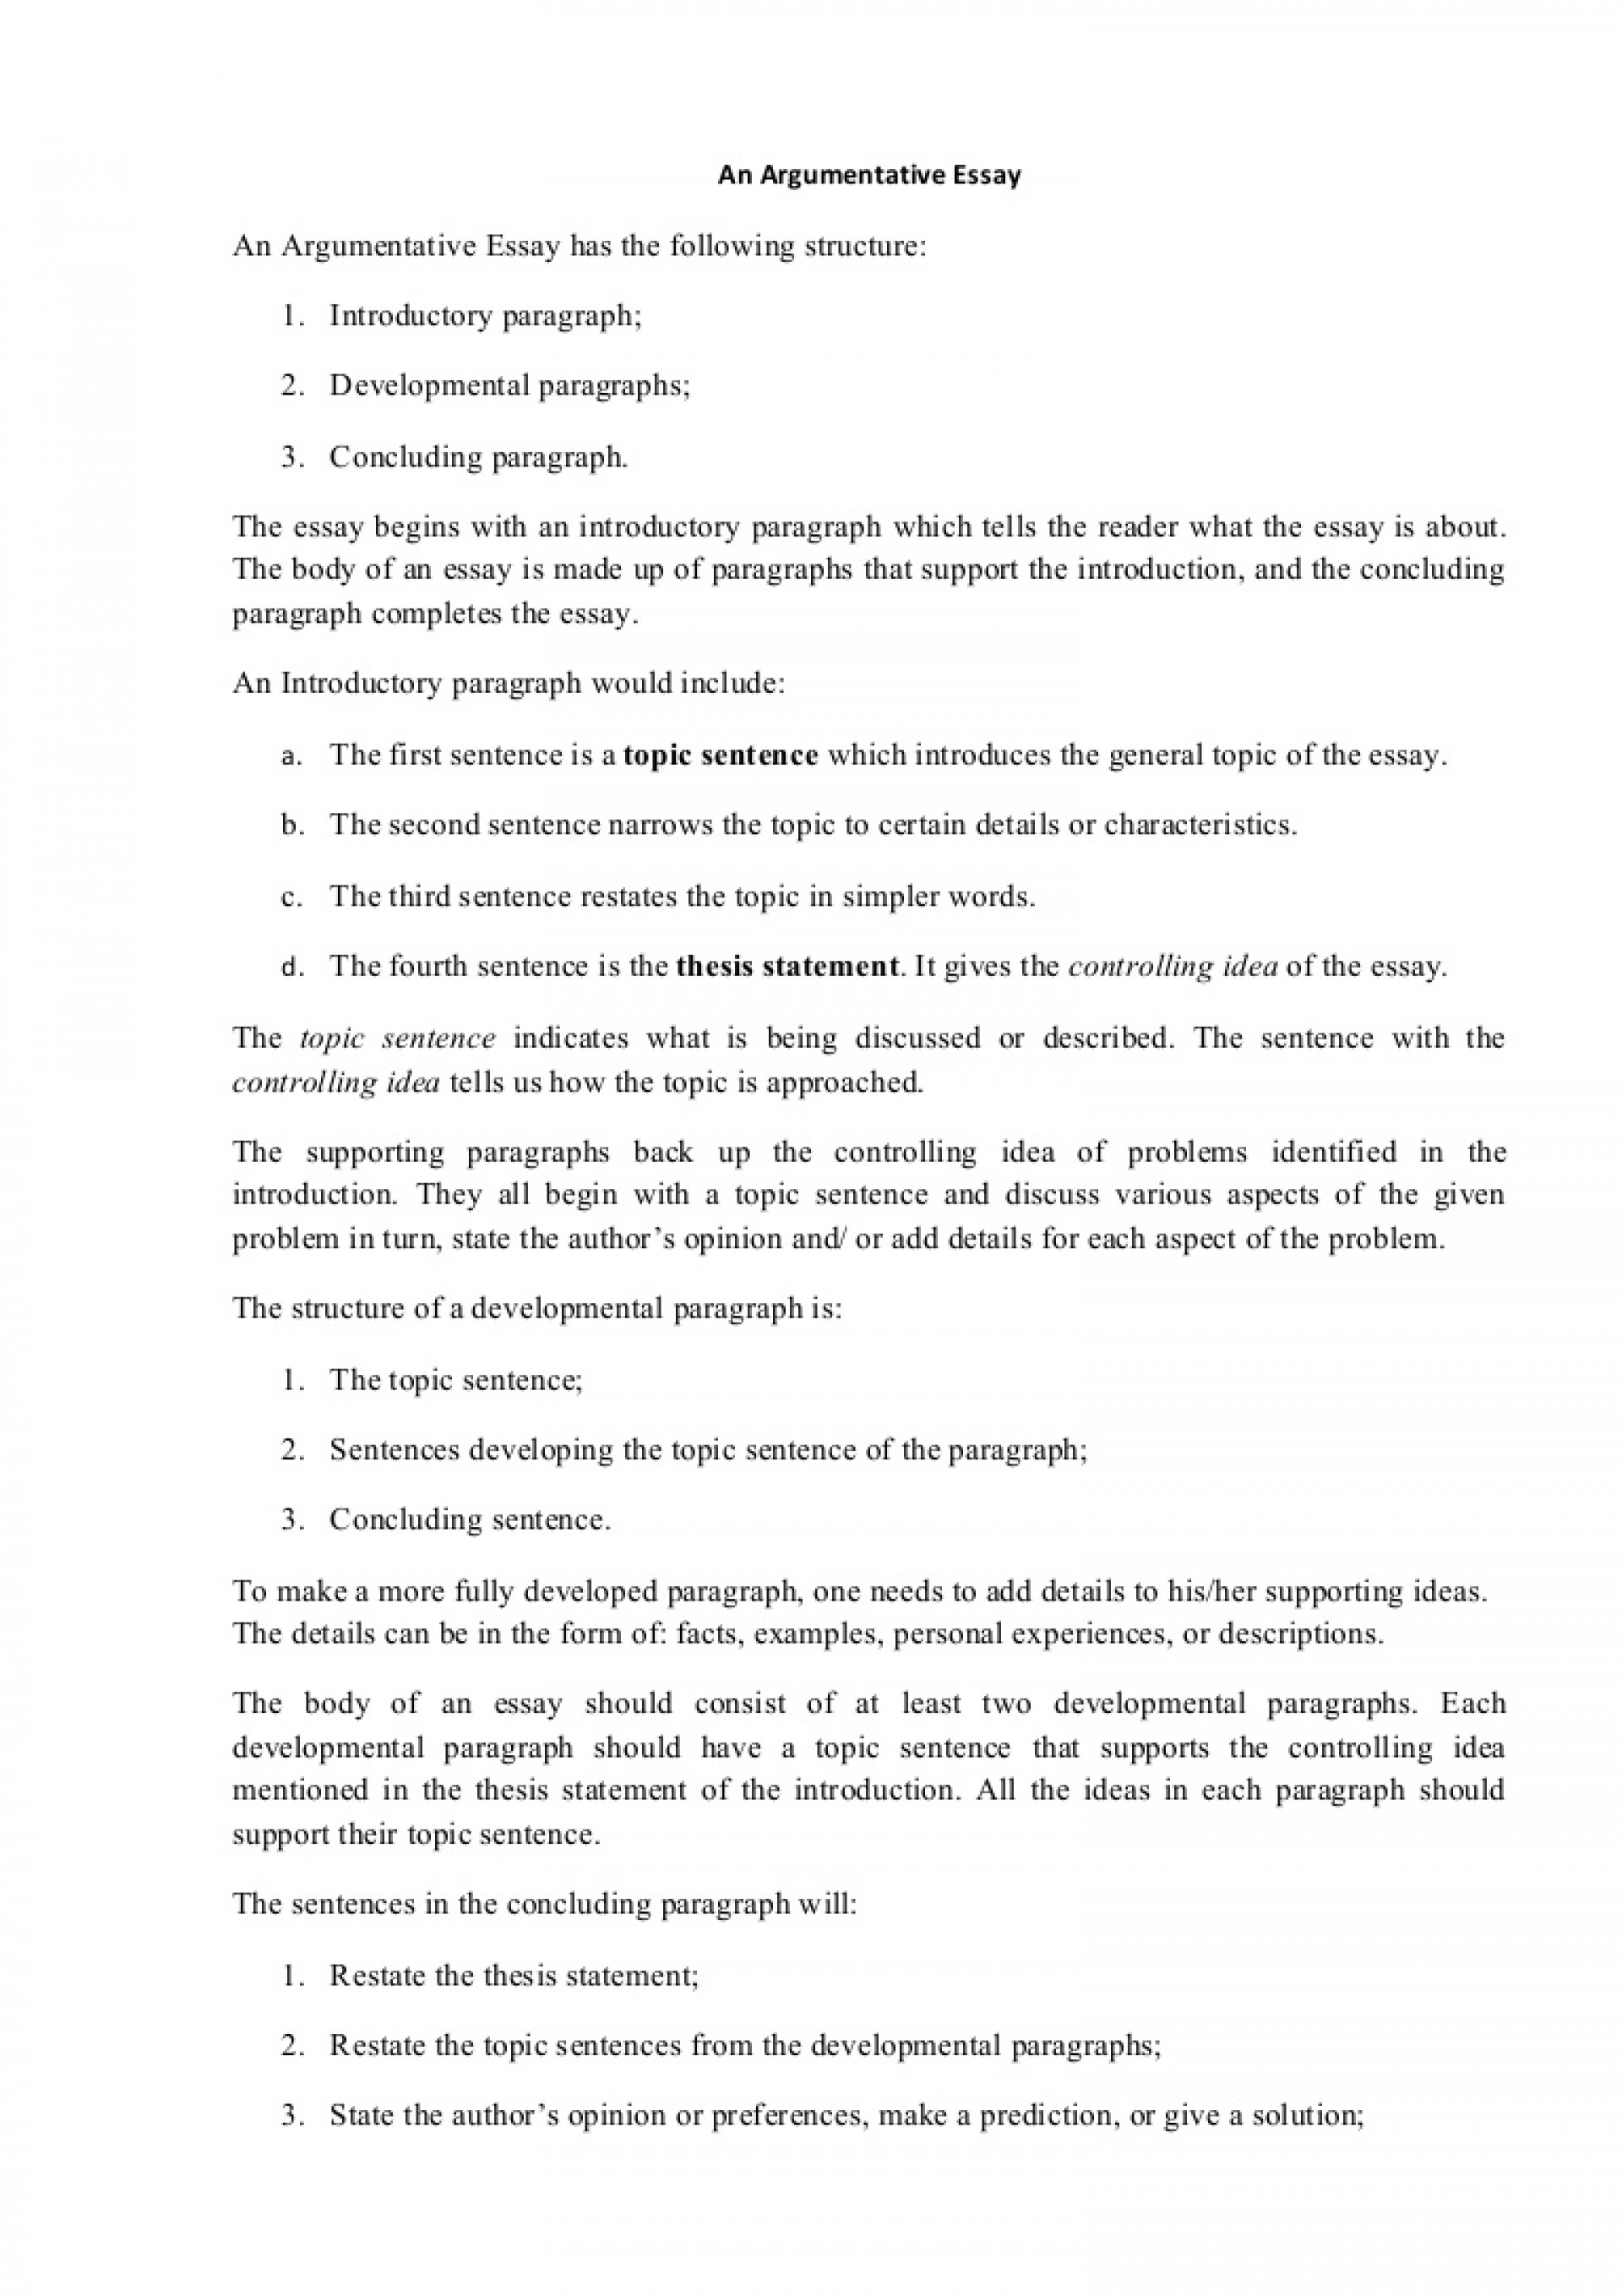 021 Argumentativeessaystructure Phpapp01 Thumbnail Essay Example Persuasive Writing Stupendous Structure Layout Lost Tools Of Outline 1920